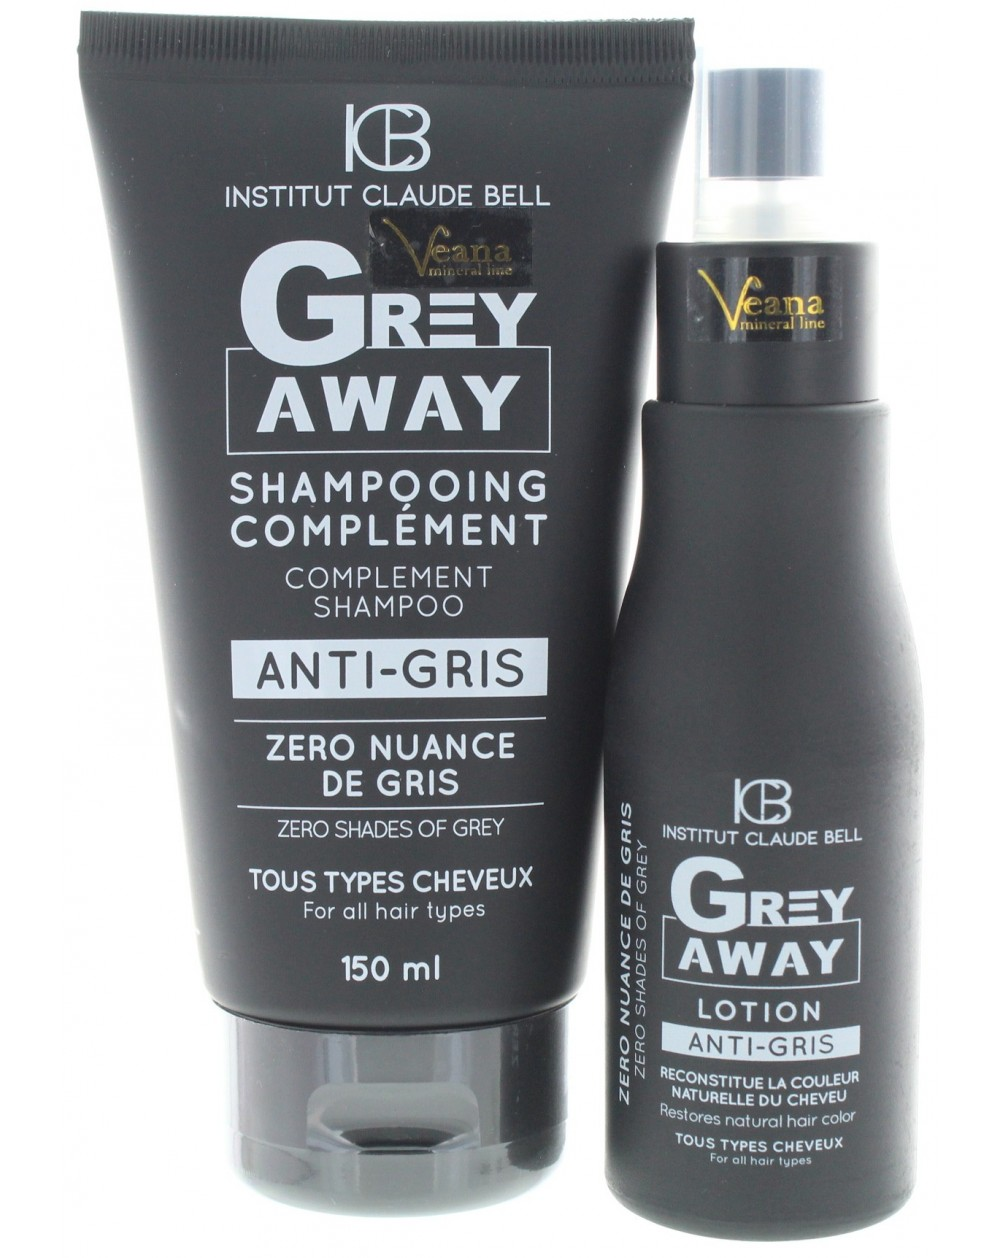 Grey Away Anti grau Shampoo + Lotion (150+100ml)